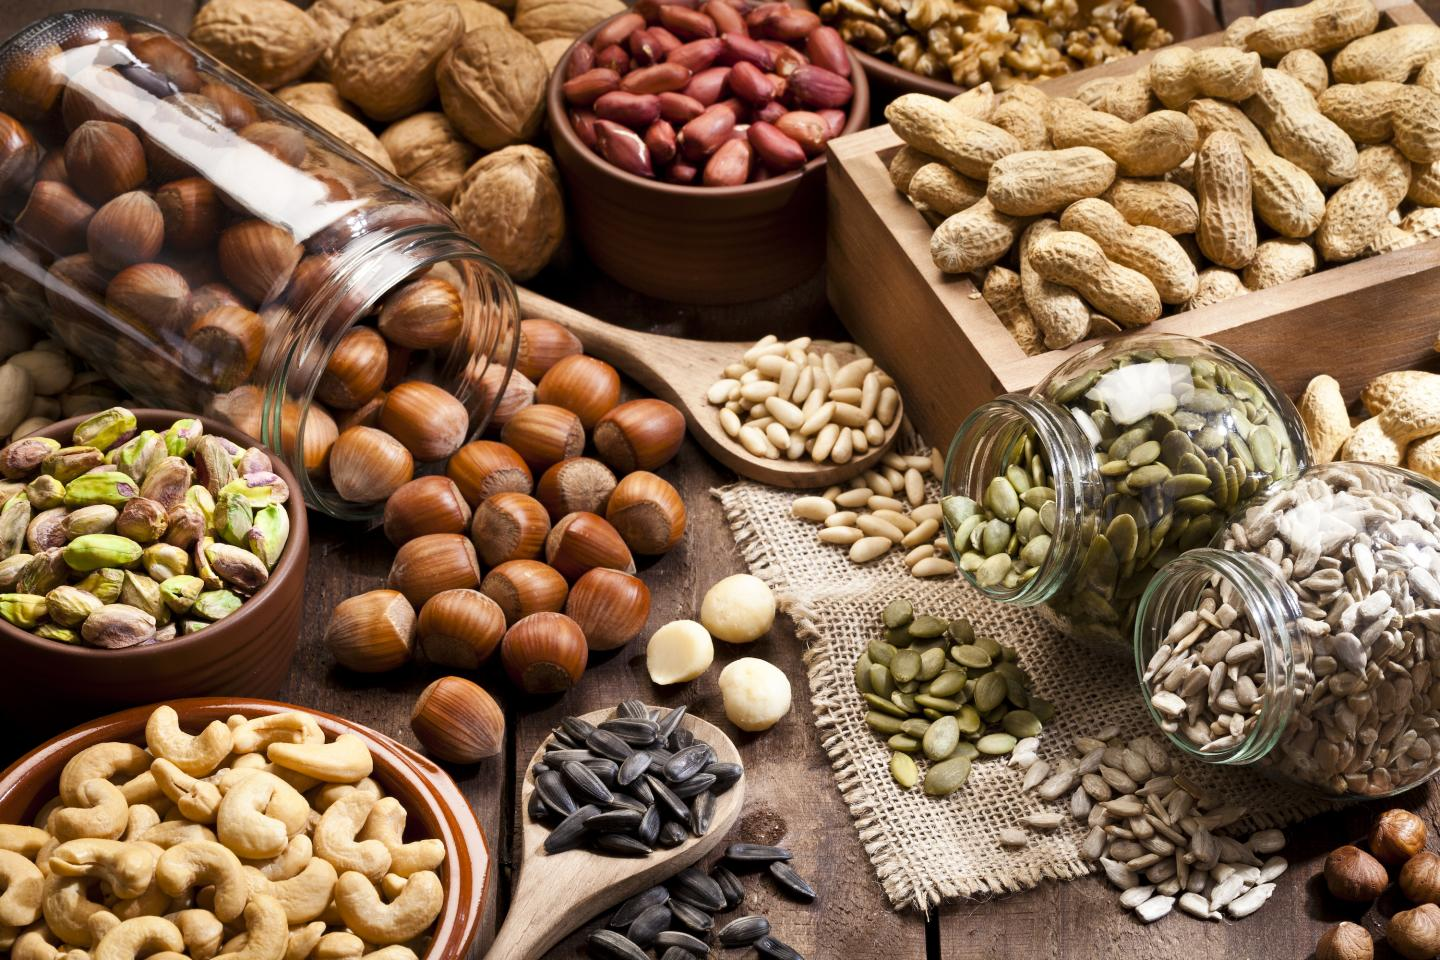 Protein from nuts and seeds are heart smart according to a new study. Credit: Loma Linda University Health